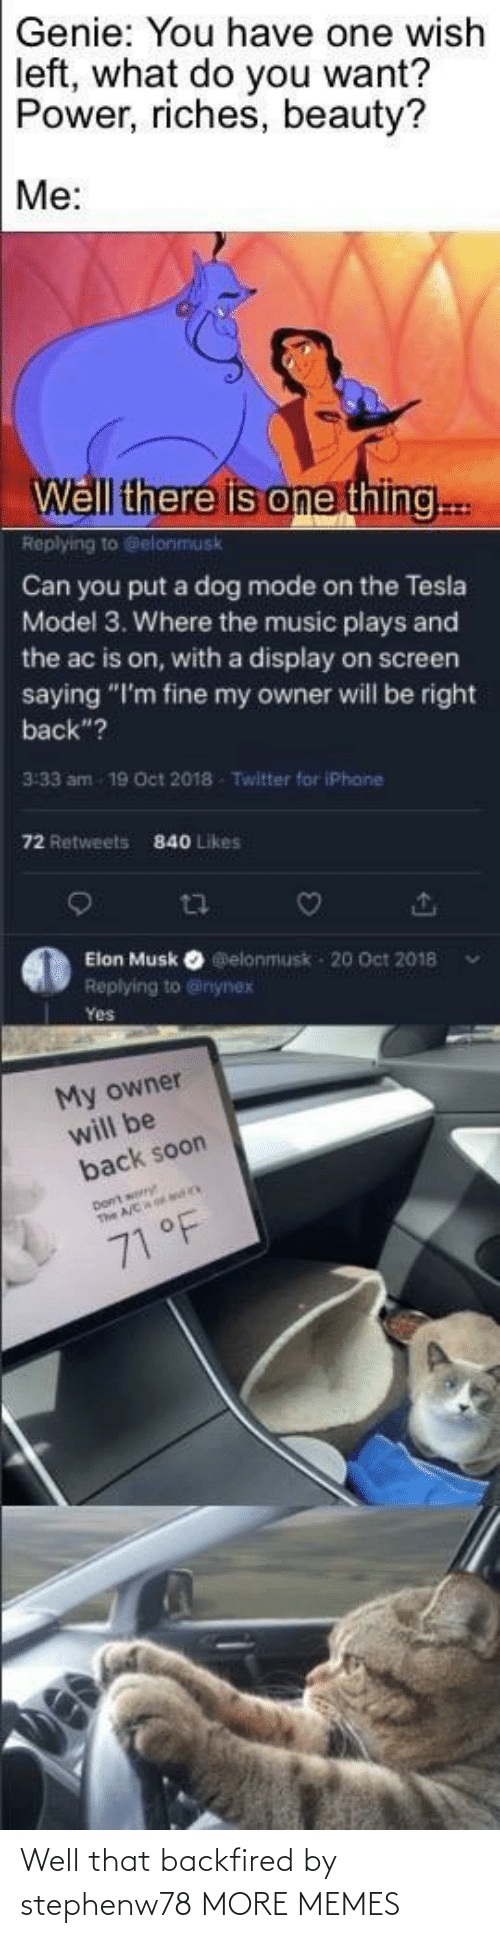 "One Thing: Genie: You have one wish  left, what do you want?  Power, riches, beauty?  Me:  Well there is one thing..  Replying to Gelonmusk  Can you put a dog mode on the Tesla  Model 3. Where the music plays and  the ac is on, with a display on screen  saying ""I'm fine my owner will be right  back""?  3:33 am  19 Oct 2018  Twitter for iPhane  72 Retweets  840 Likes  Elon Musk O elonmusk - 20 Oct 2018  Replying to @inynex  Yes  My owner  will be  back soon  71 °F Well that backfired by stephenw78 MORE MEMES"